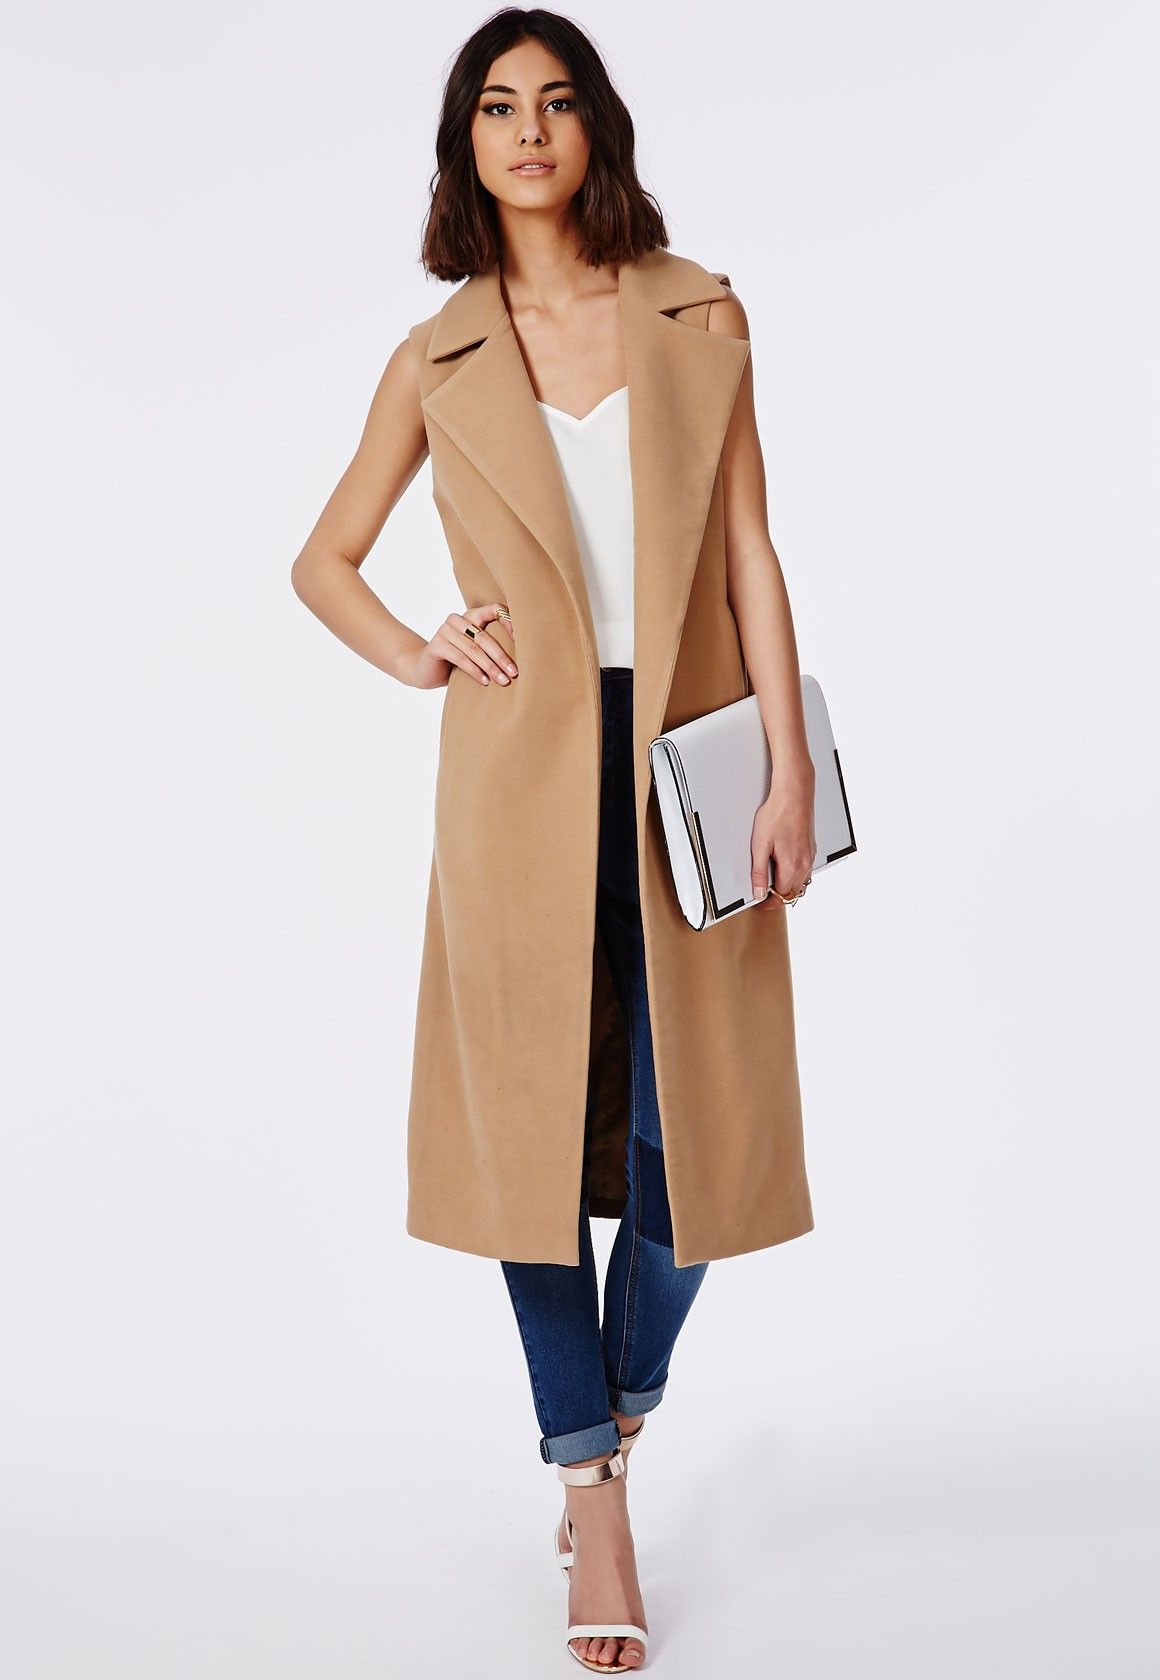 Sleeveless Tailored Coat Camel | Missguided, Camels and Coats